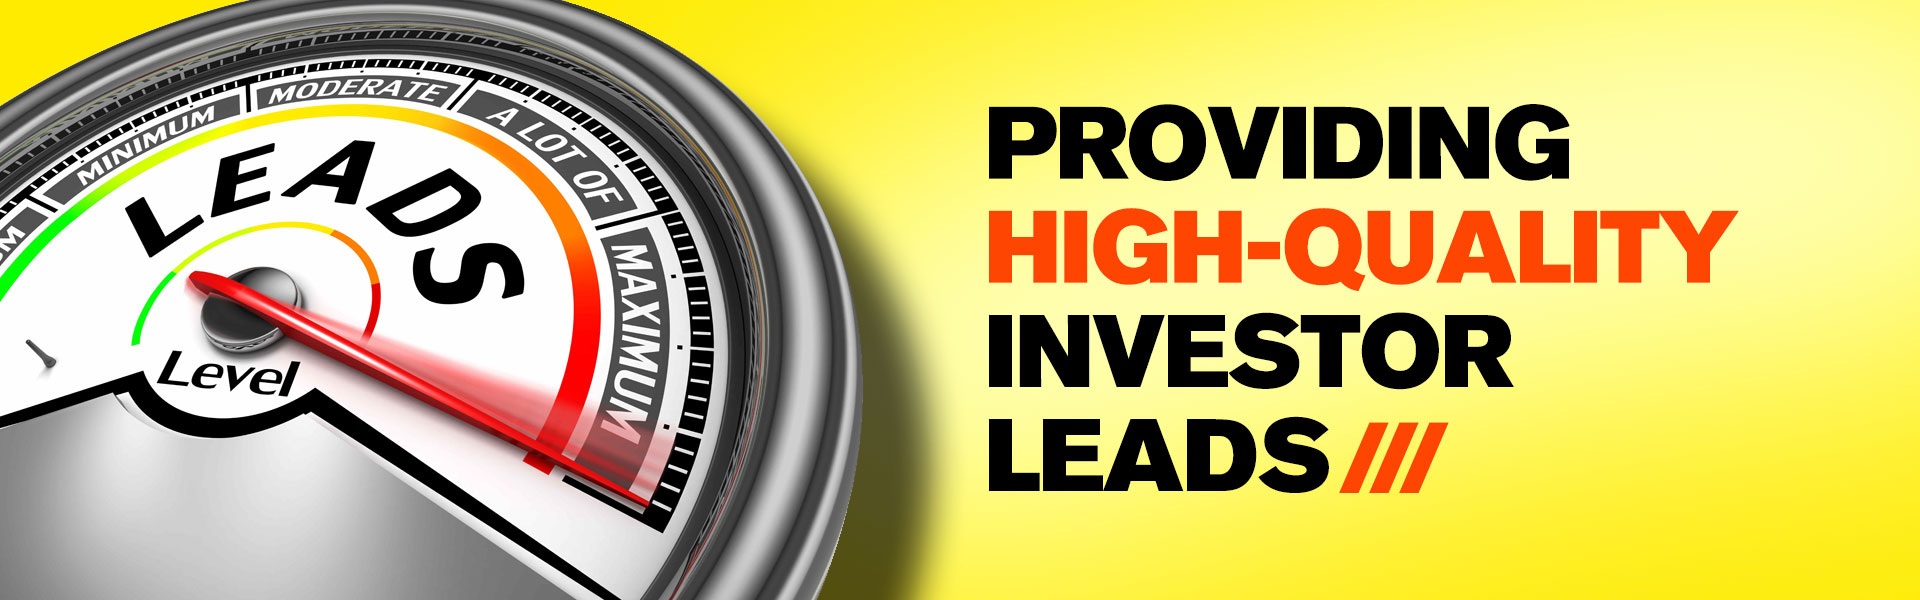 Stock Investor Leads High Networth